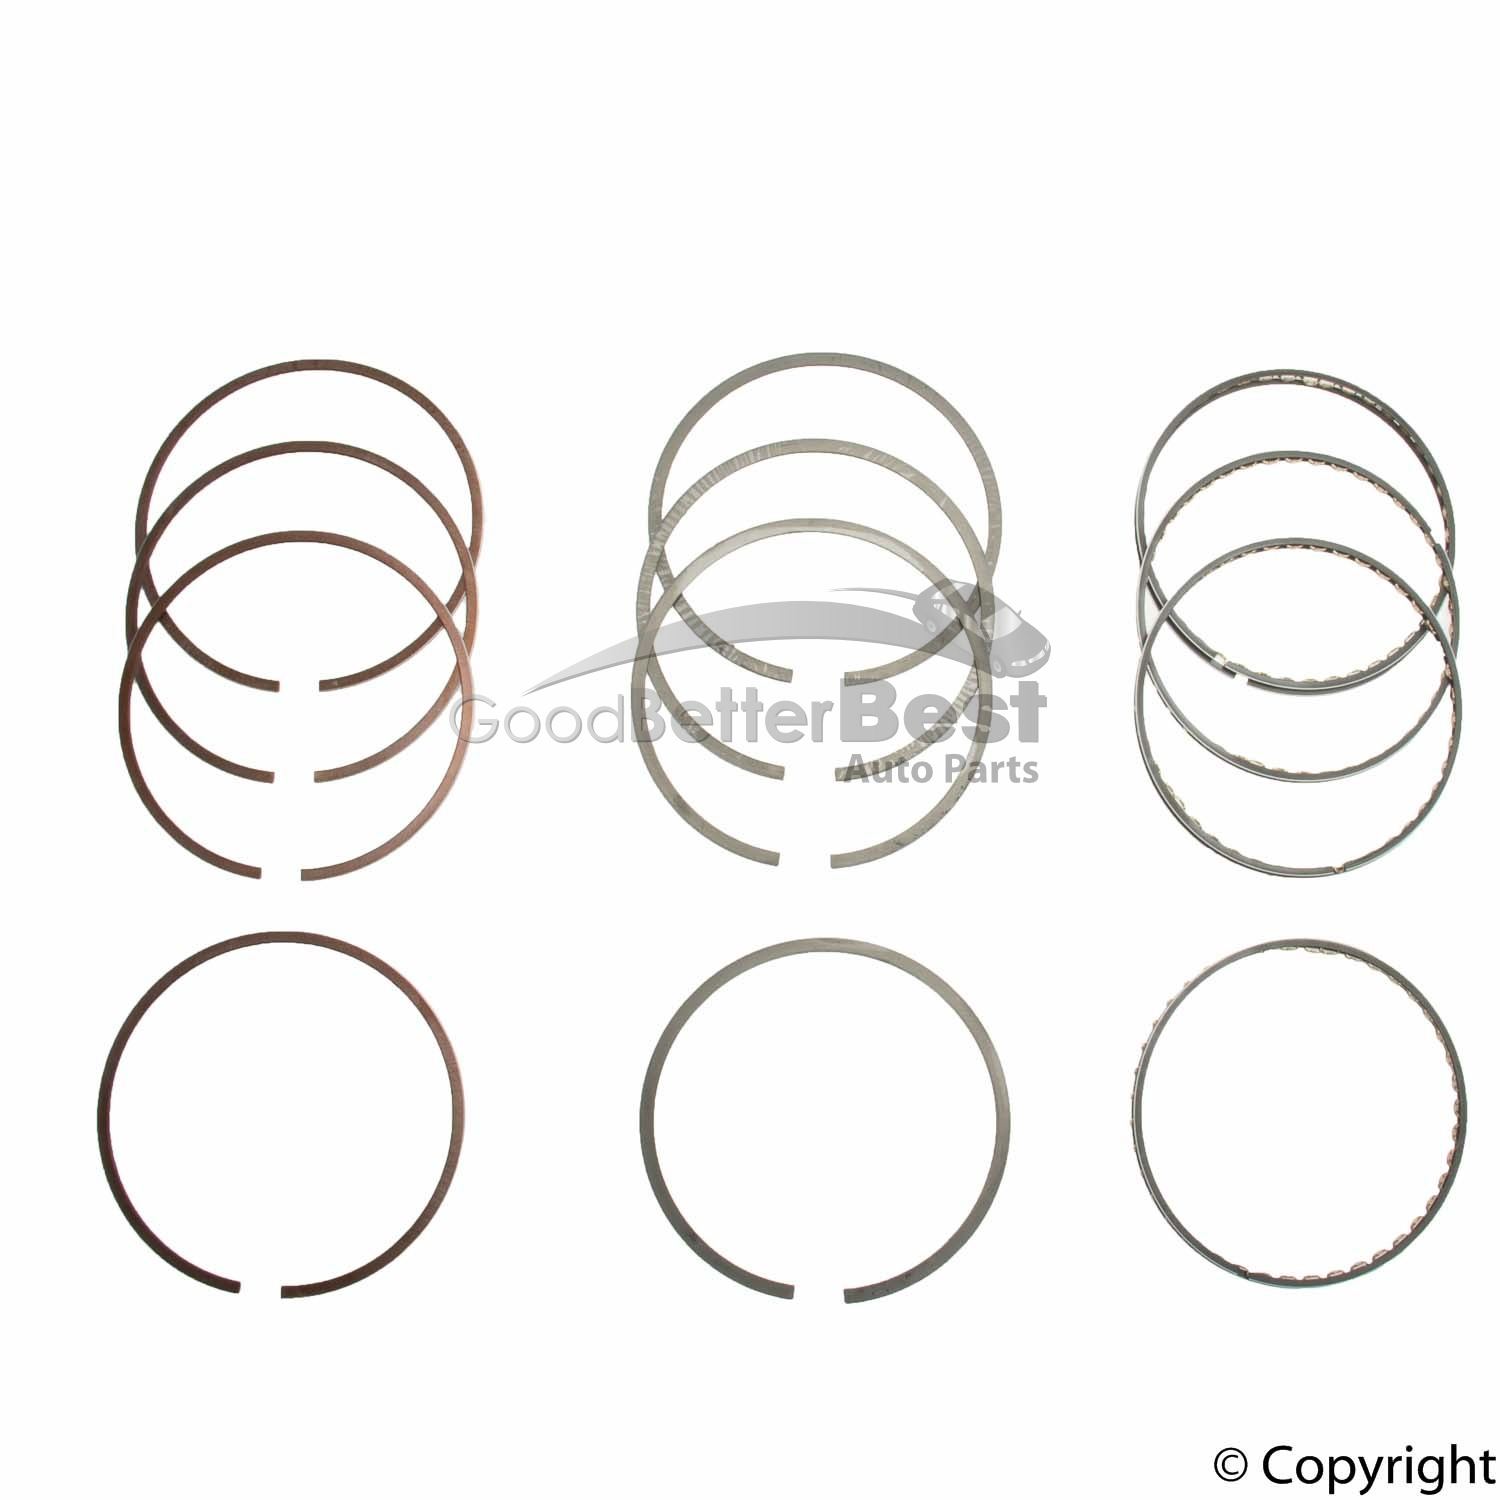 New Npr Engine Piston Ring Set Swn Zz For Nissan